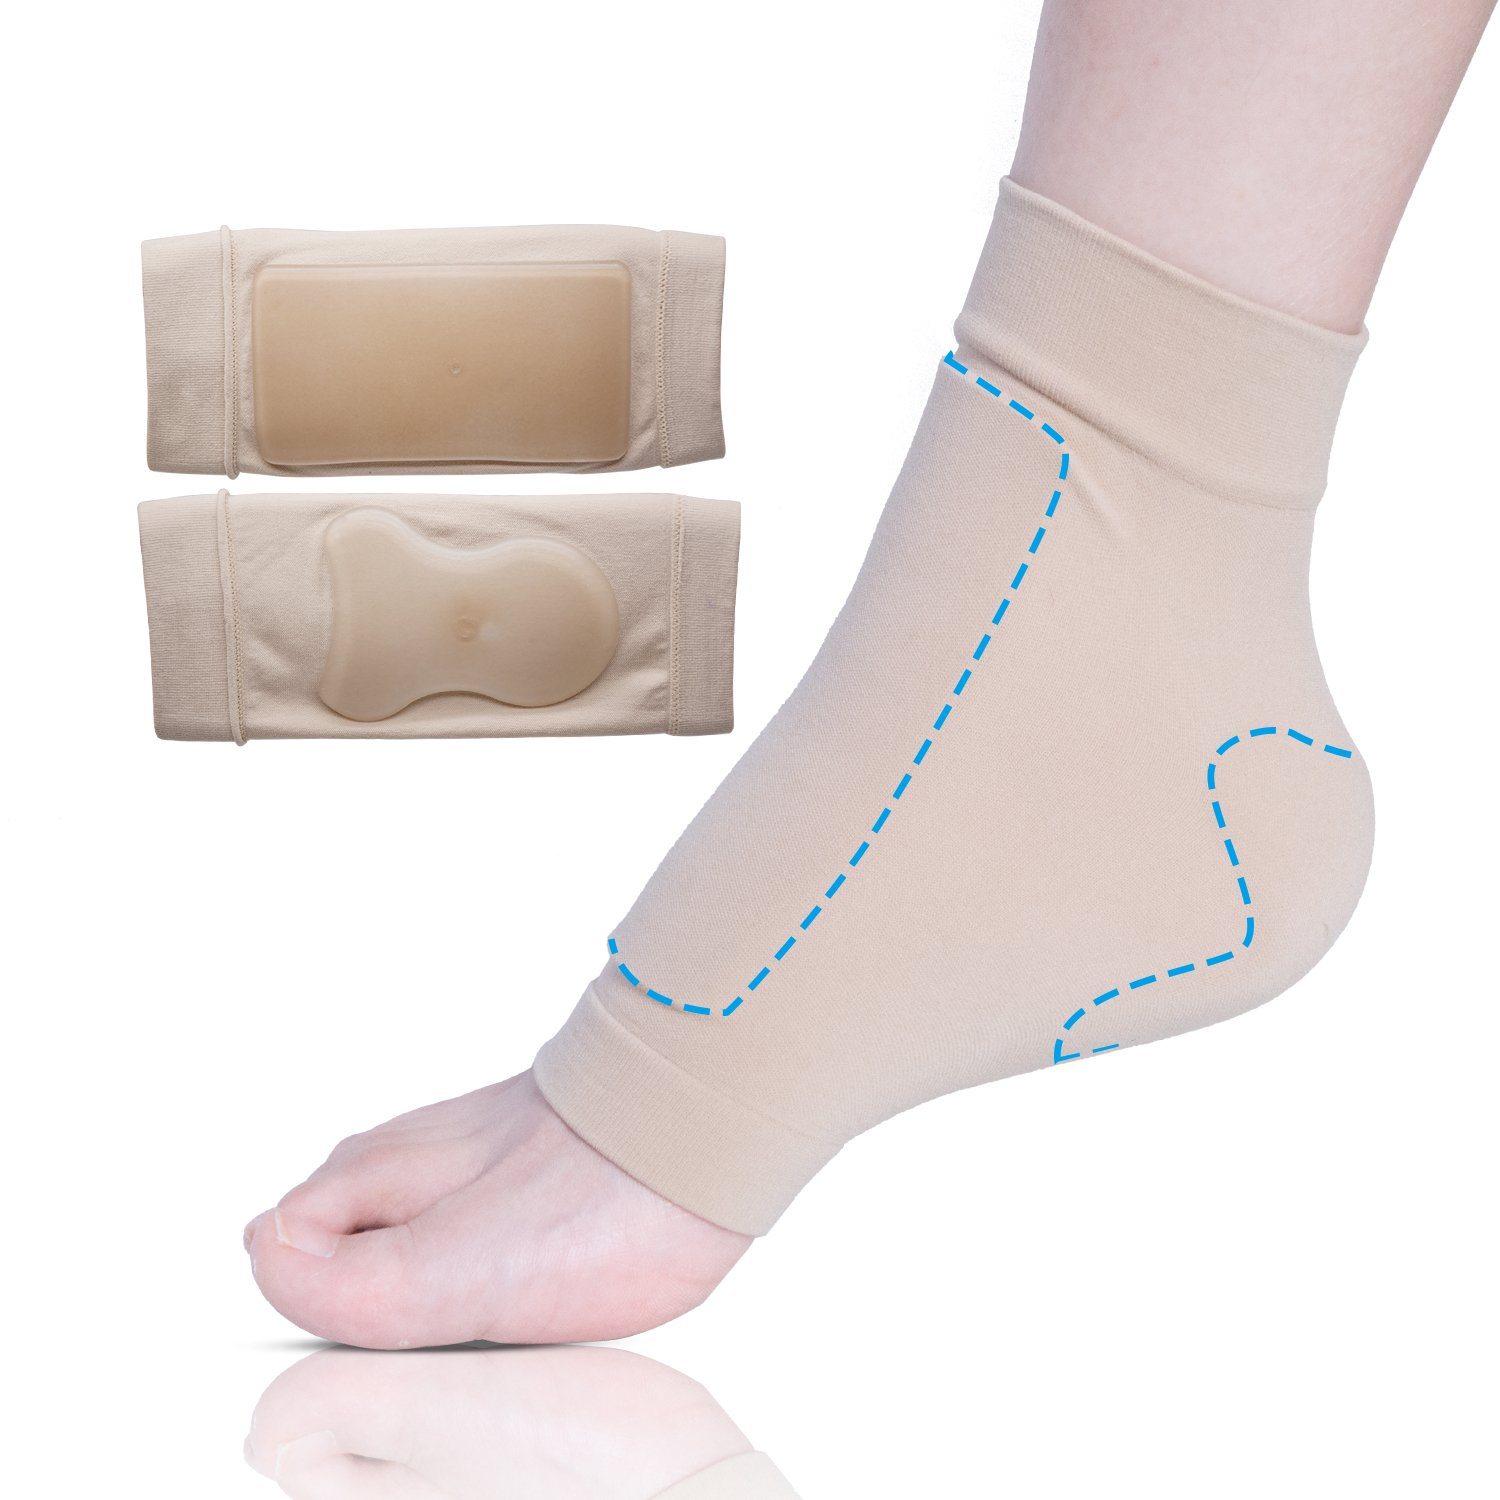 Sumifun Achilles Heel Pad Gel Sleeve, Cushioning Protection Socks with Moisturising Mineral Grade Oil